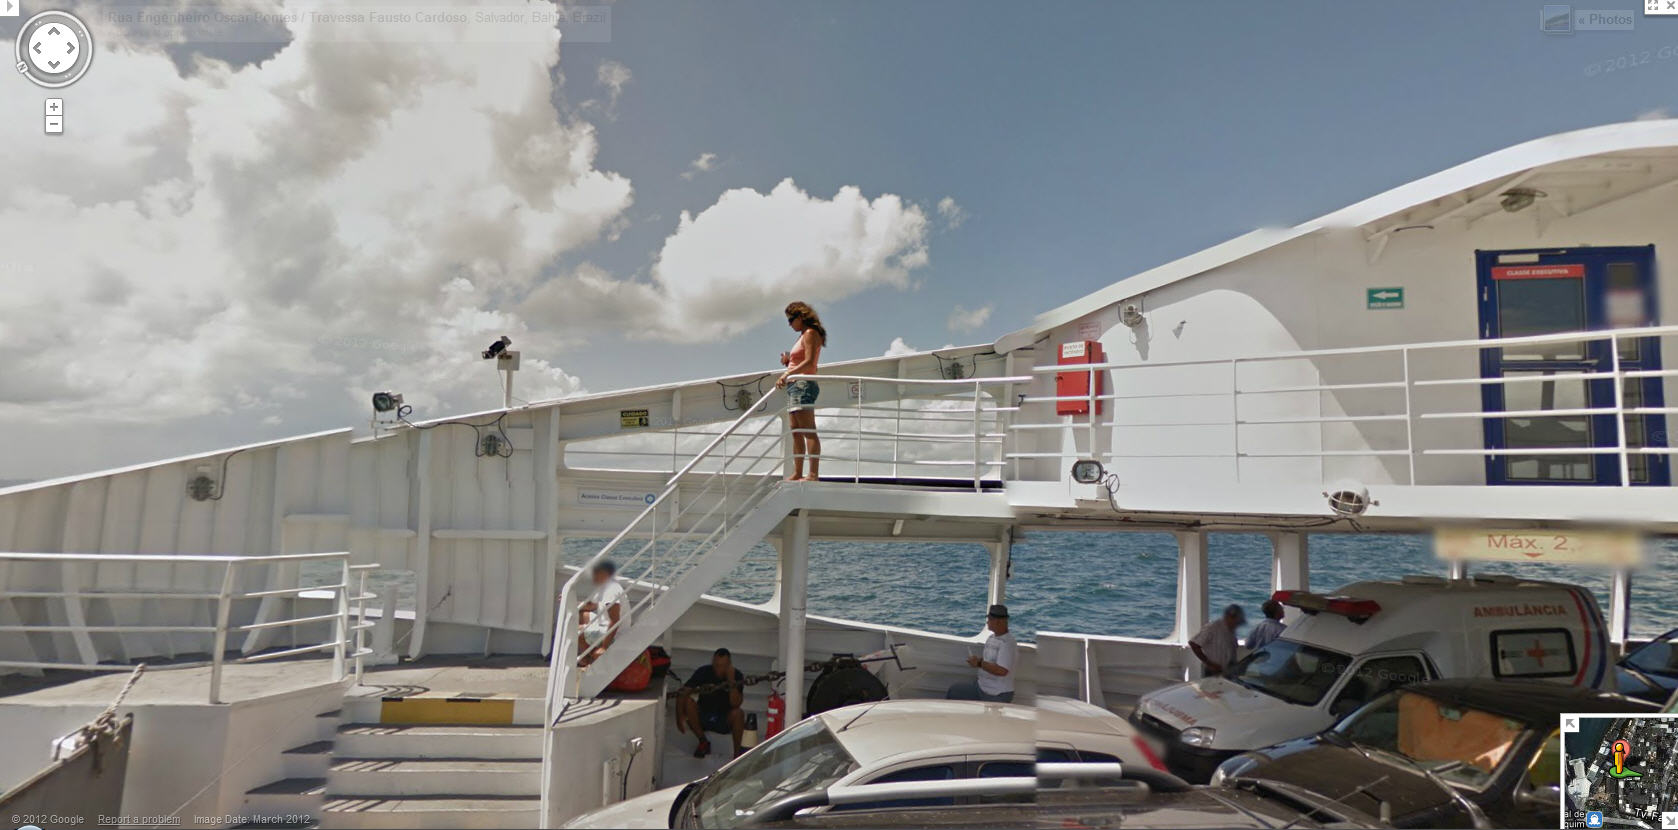 google-street-view-goes-for-a-ferry-ride-down-in-brazil--